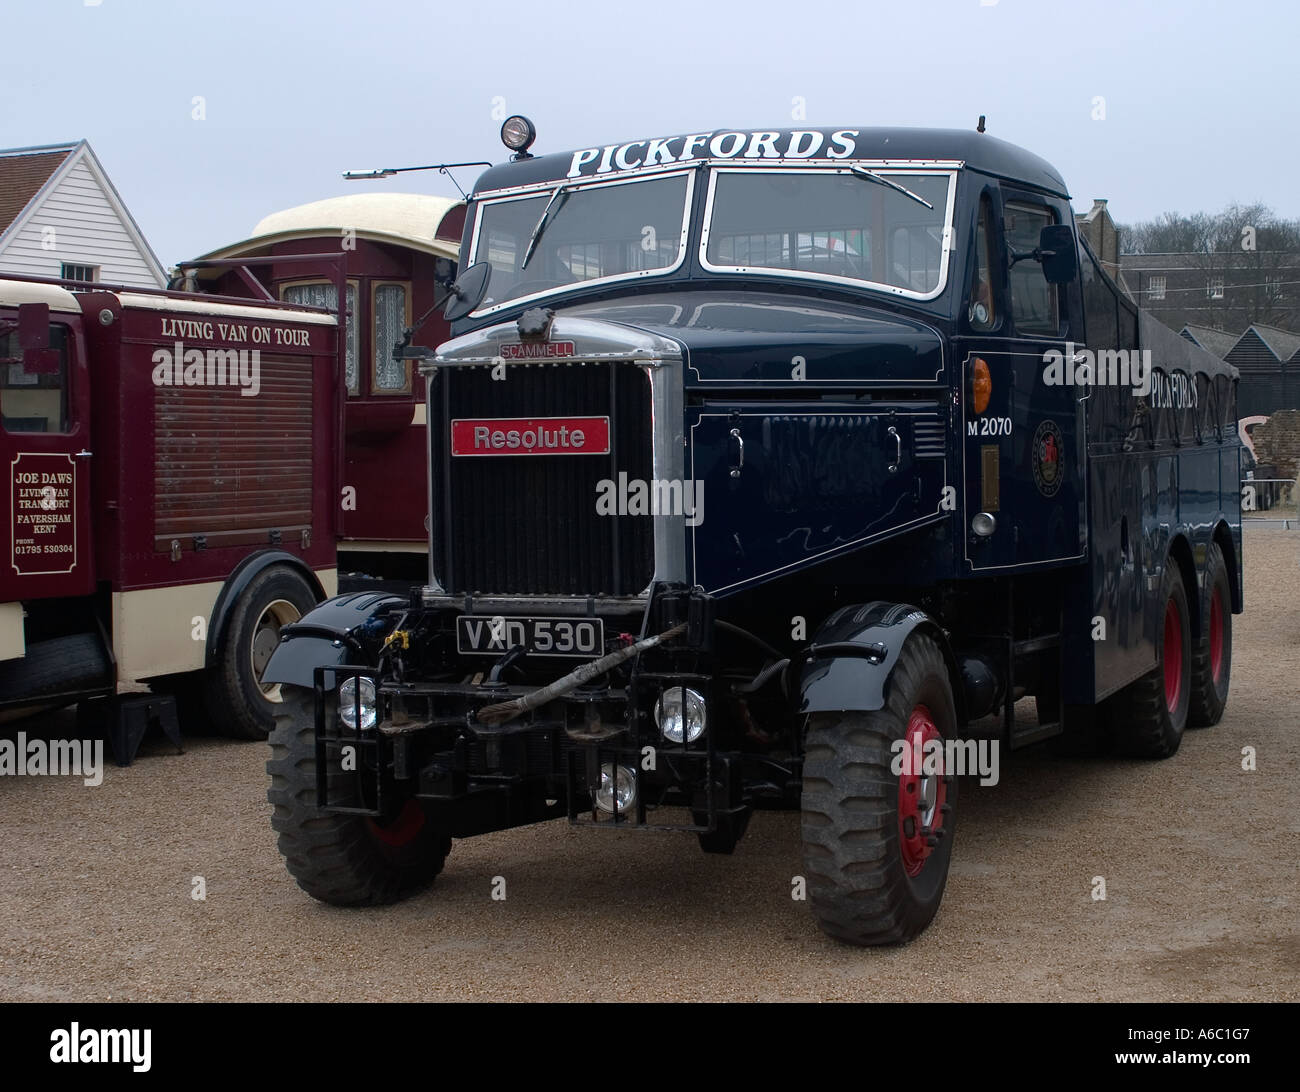 Pickfords Scammell Heavy Goods Haulage Lorry called Resolute at Chatham Docks Vintage Transport Day - Stock Image